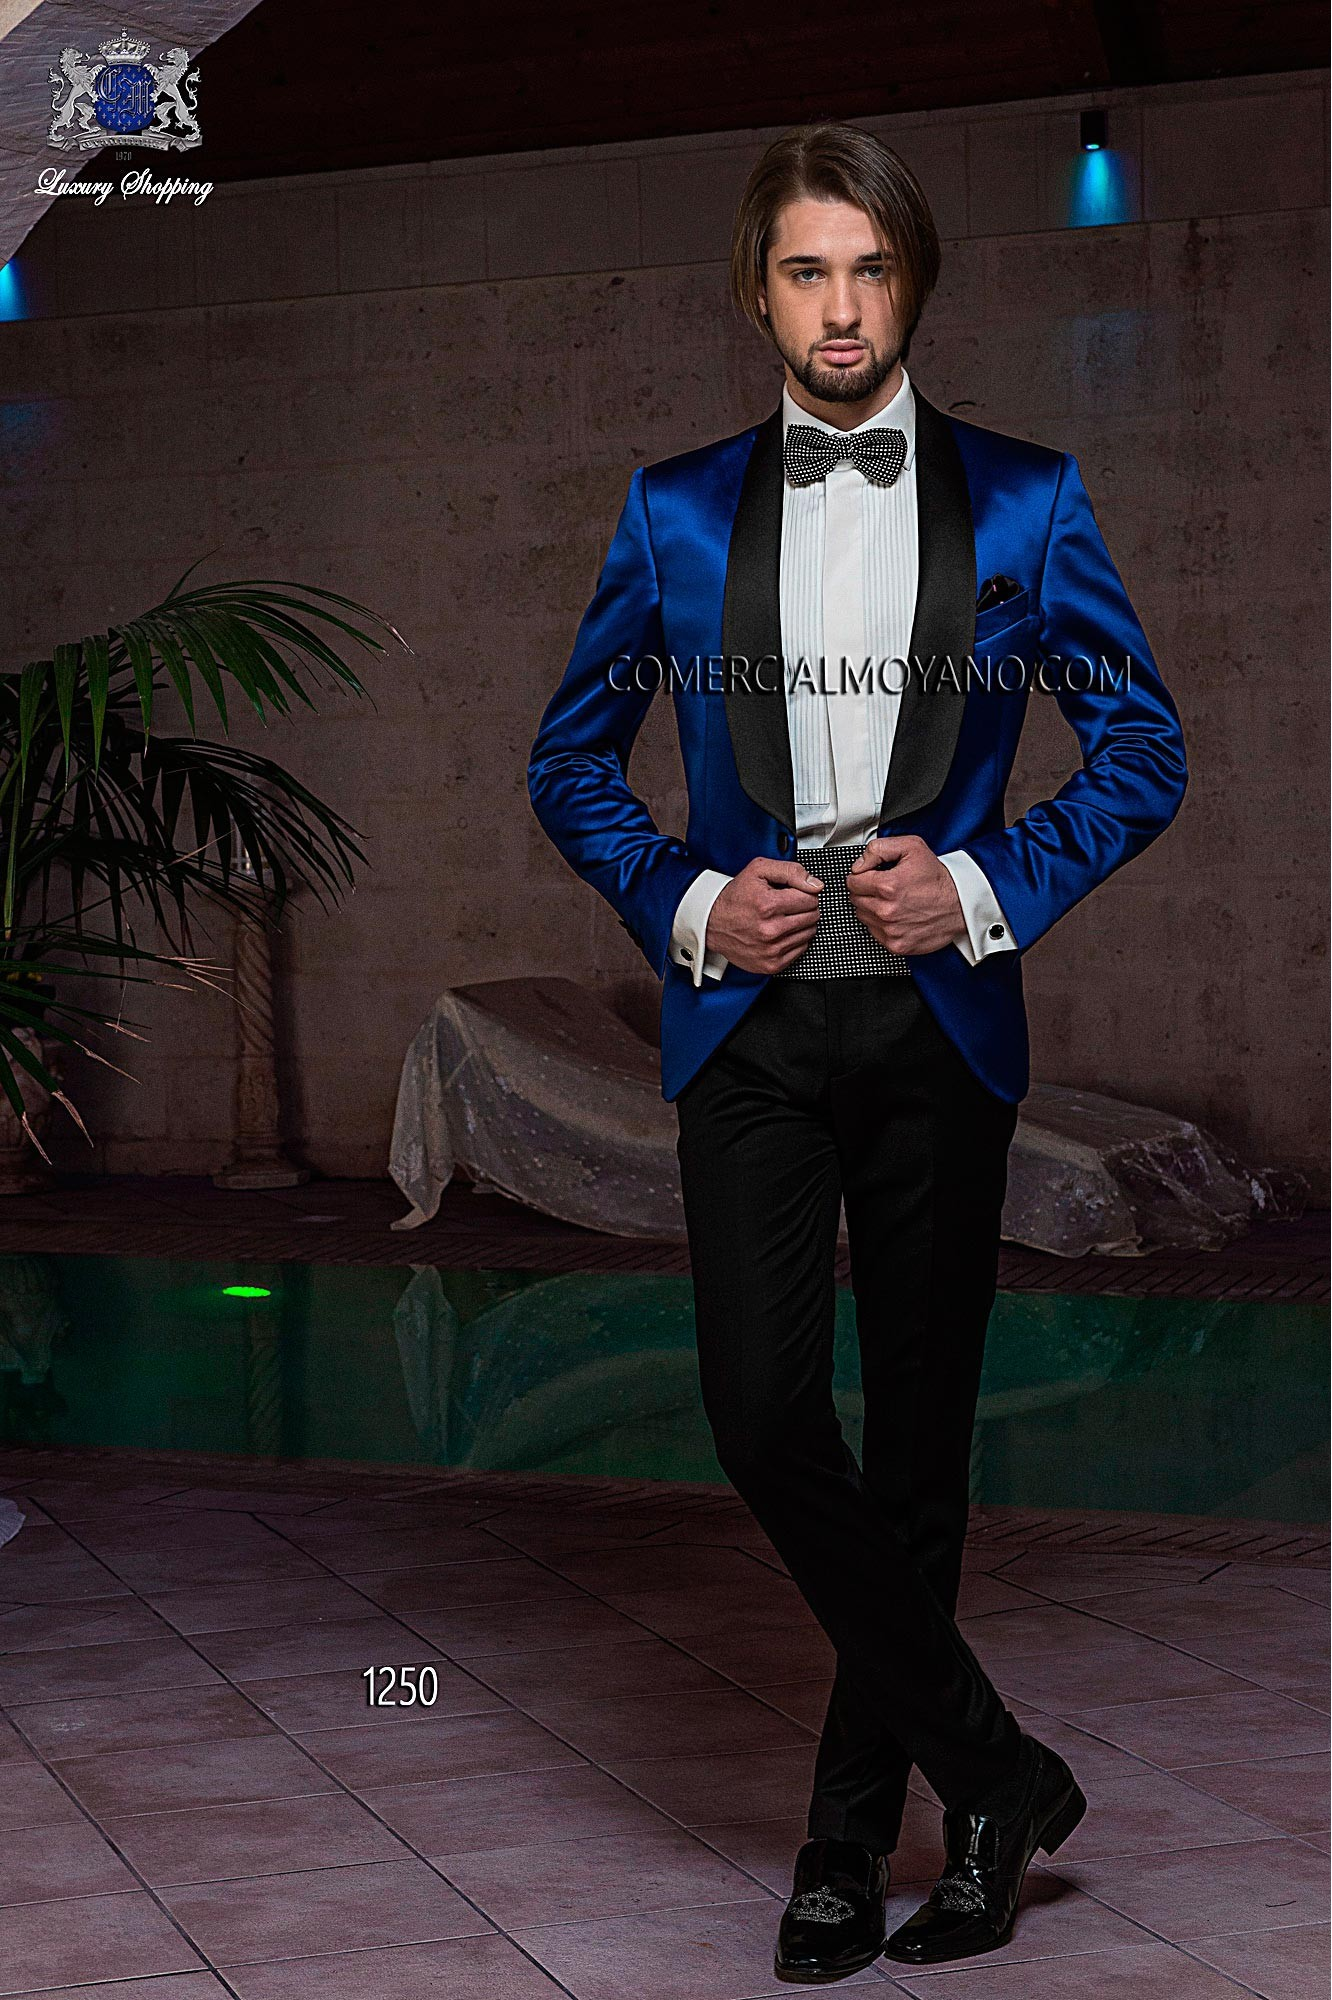 Italian bespoke suit, blue satin tuxedo with black satin shawl lapel, coordinated with black new performance trouser, style 1250 Ottavio Nuccio Gala, 2015 Black Tie collection.